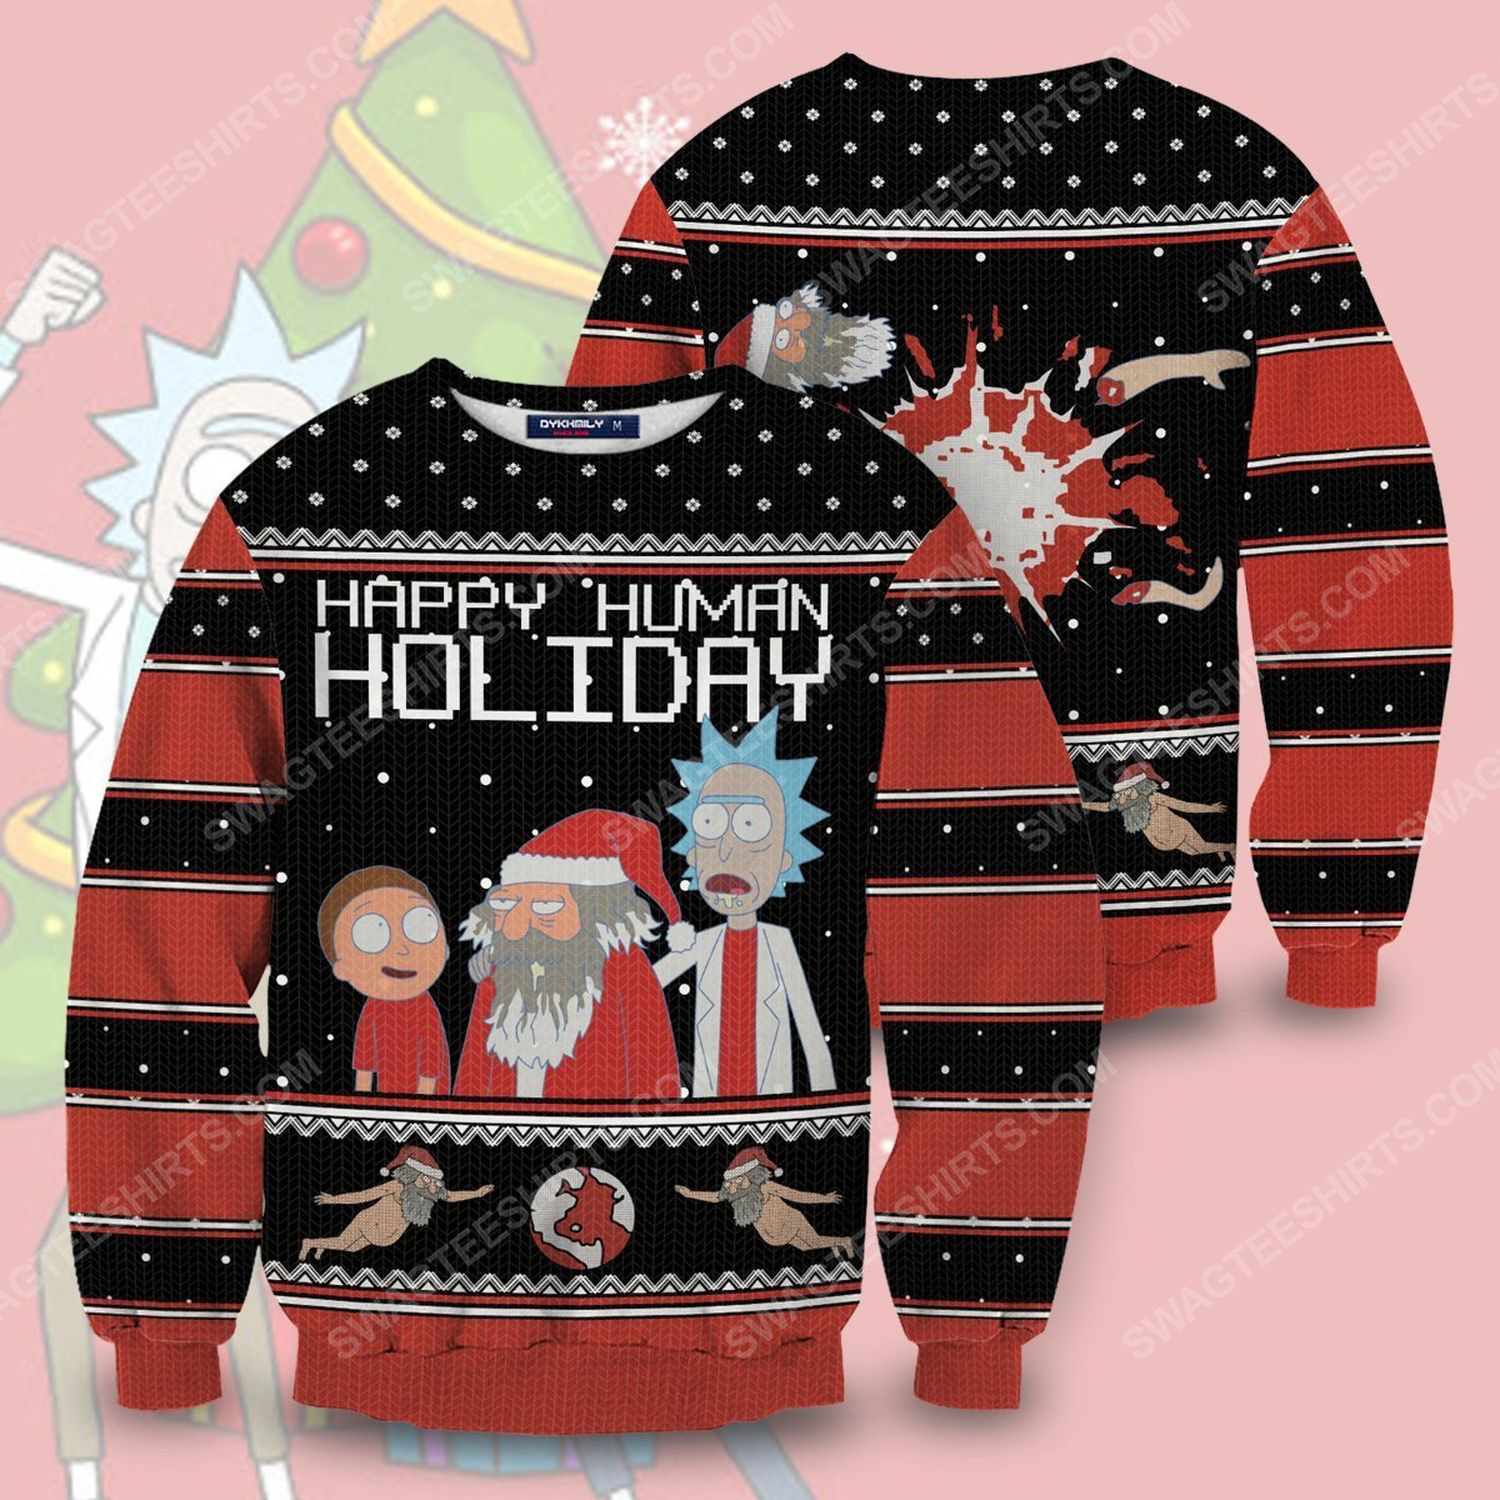 Happy human holiday rick and morty full print ugly christmas sweater 1